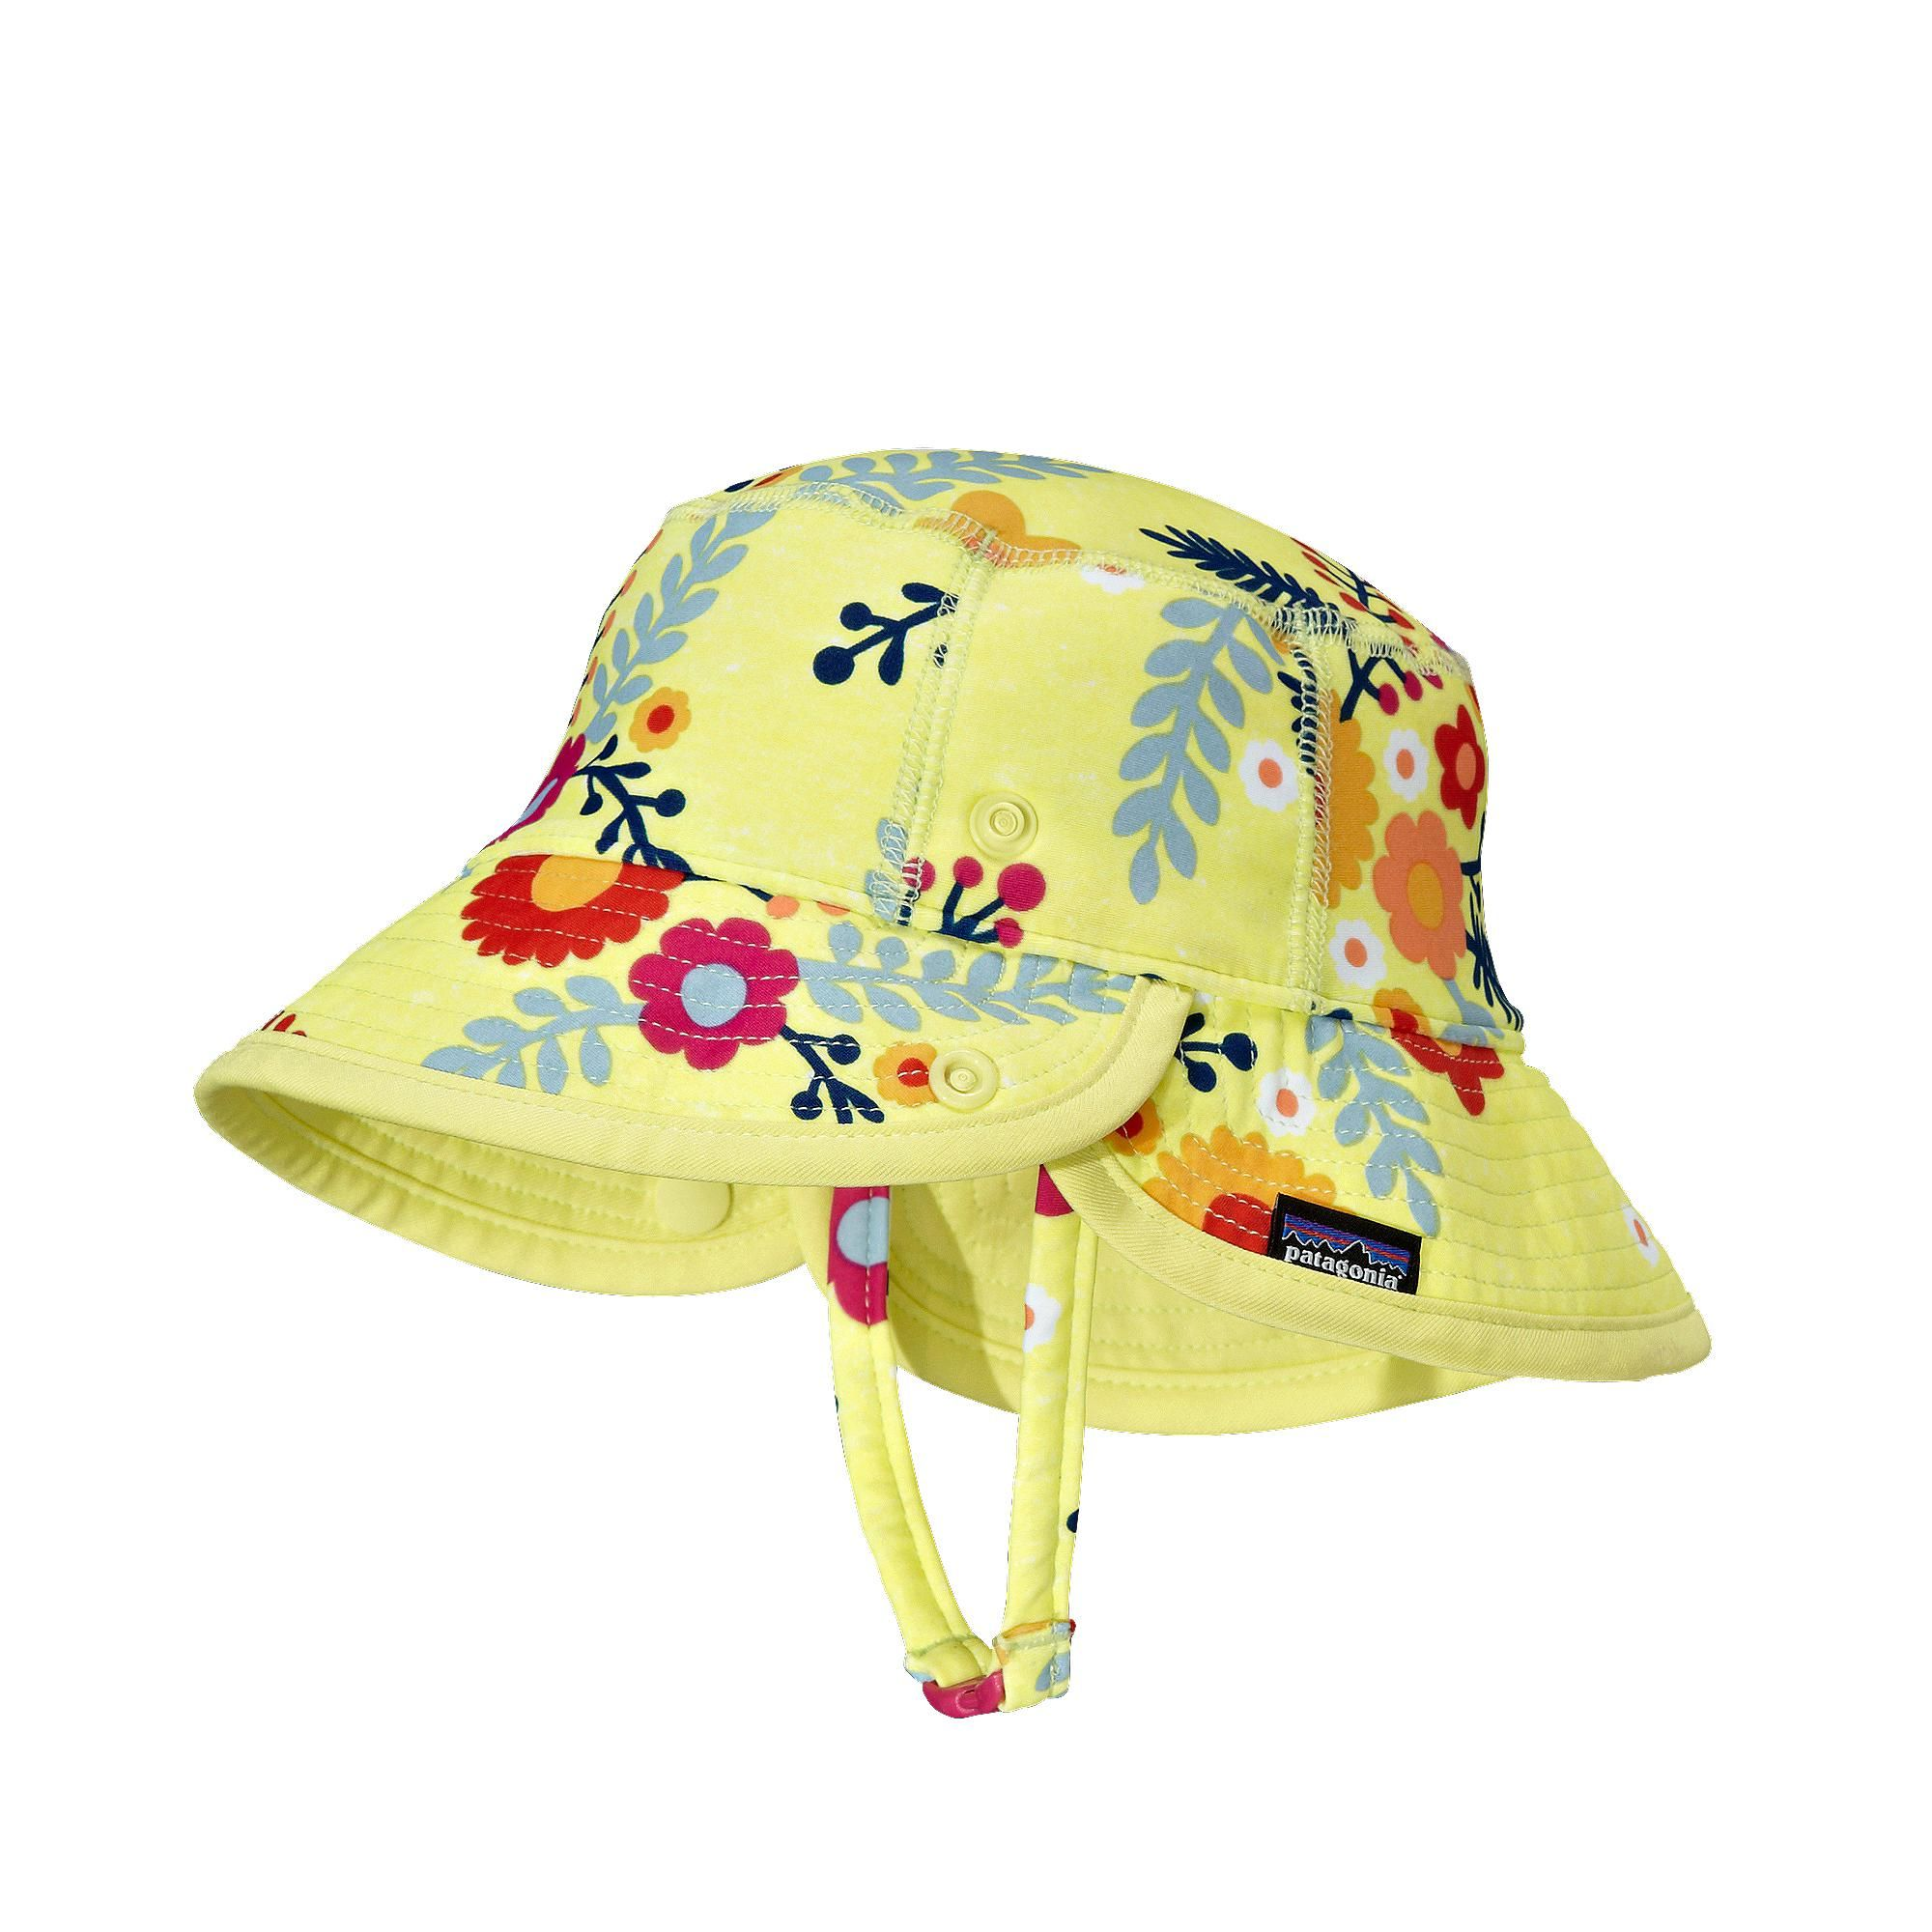 a59d13c70 The perfect baby sun hat for the beach: the Patagonia Baby Little ...